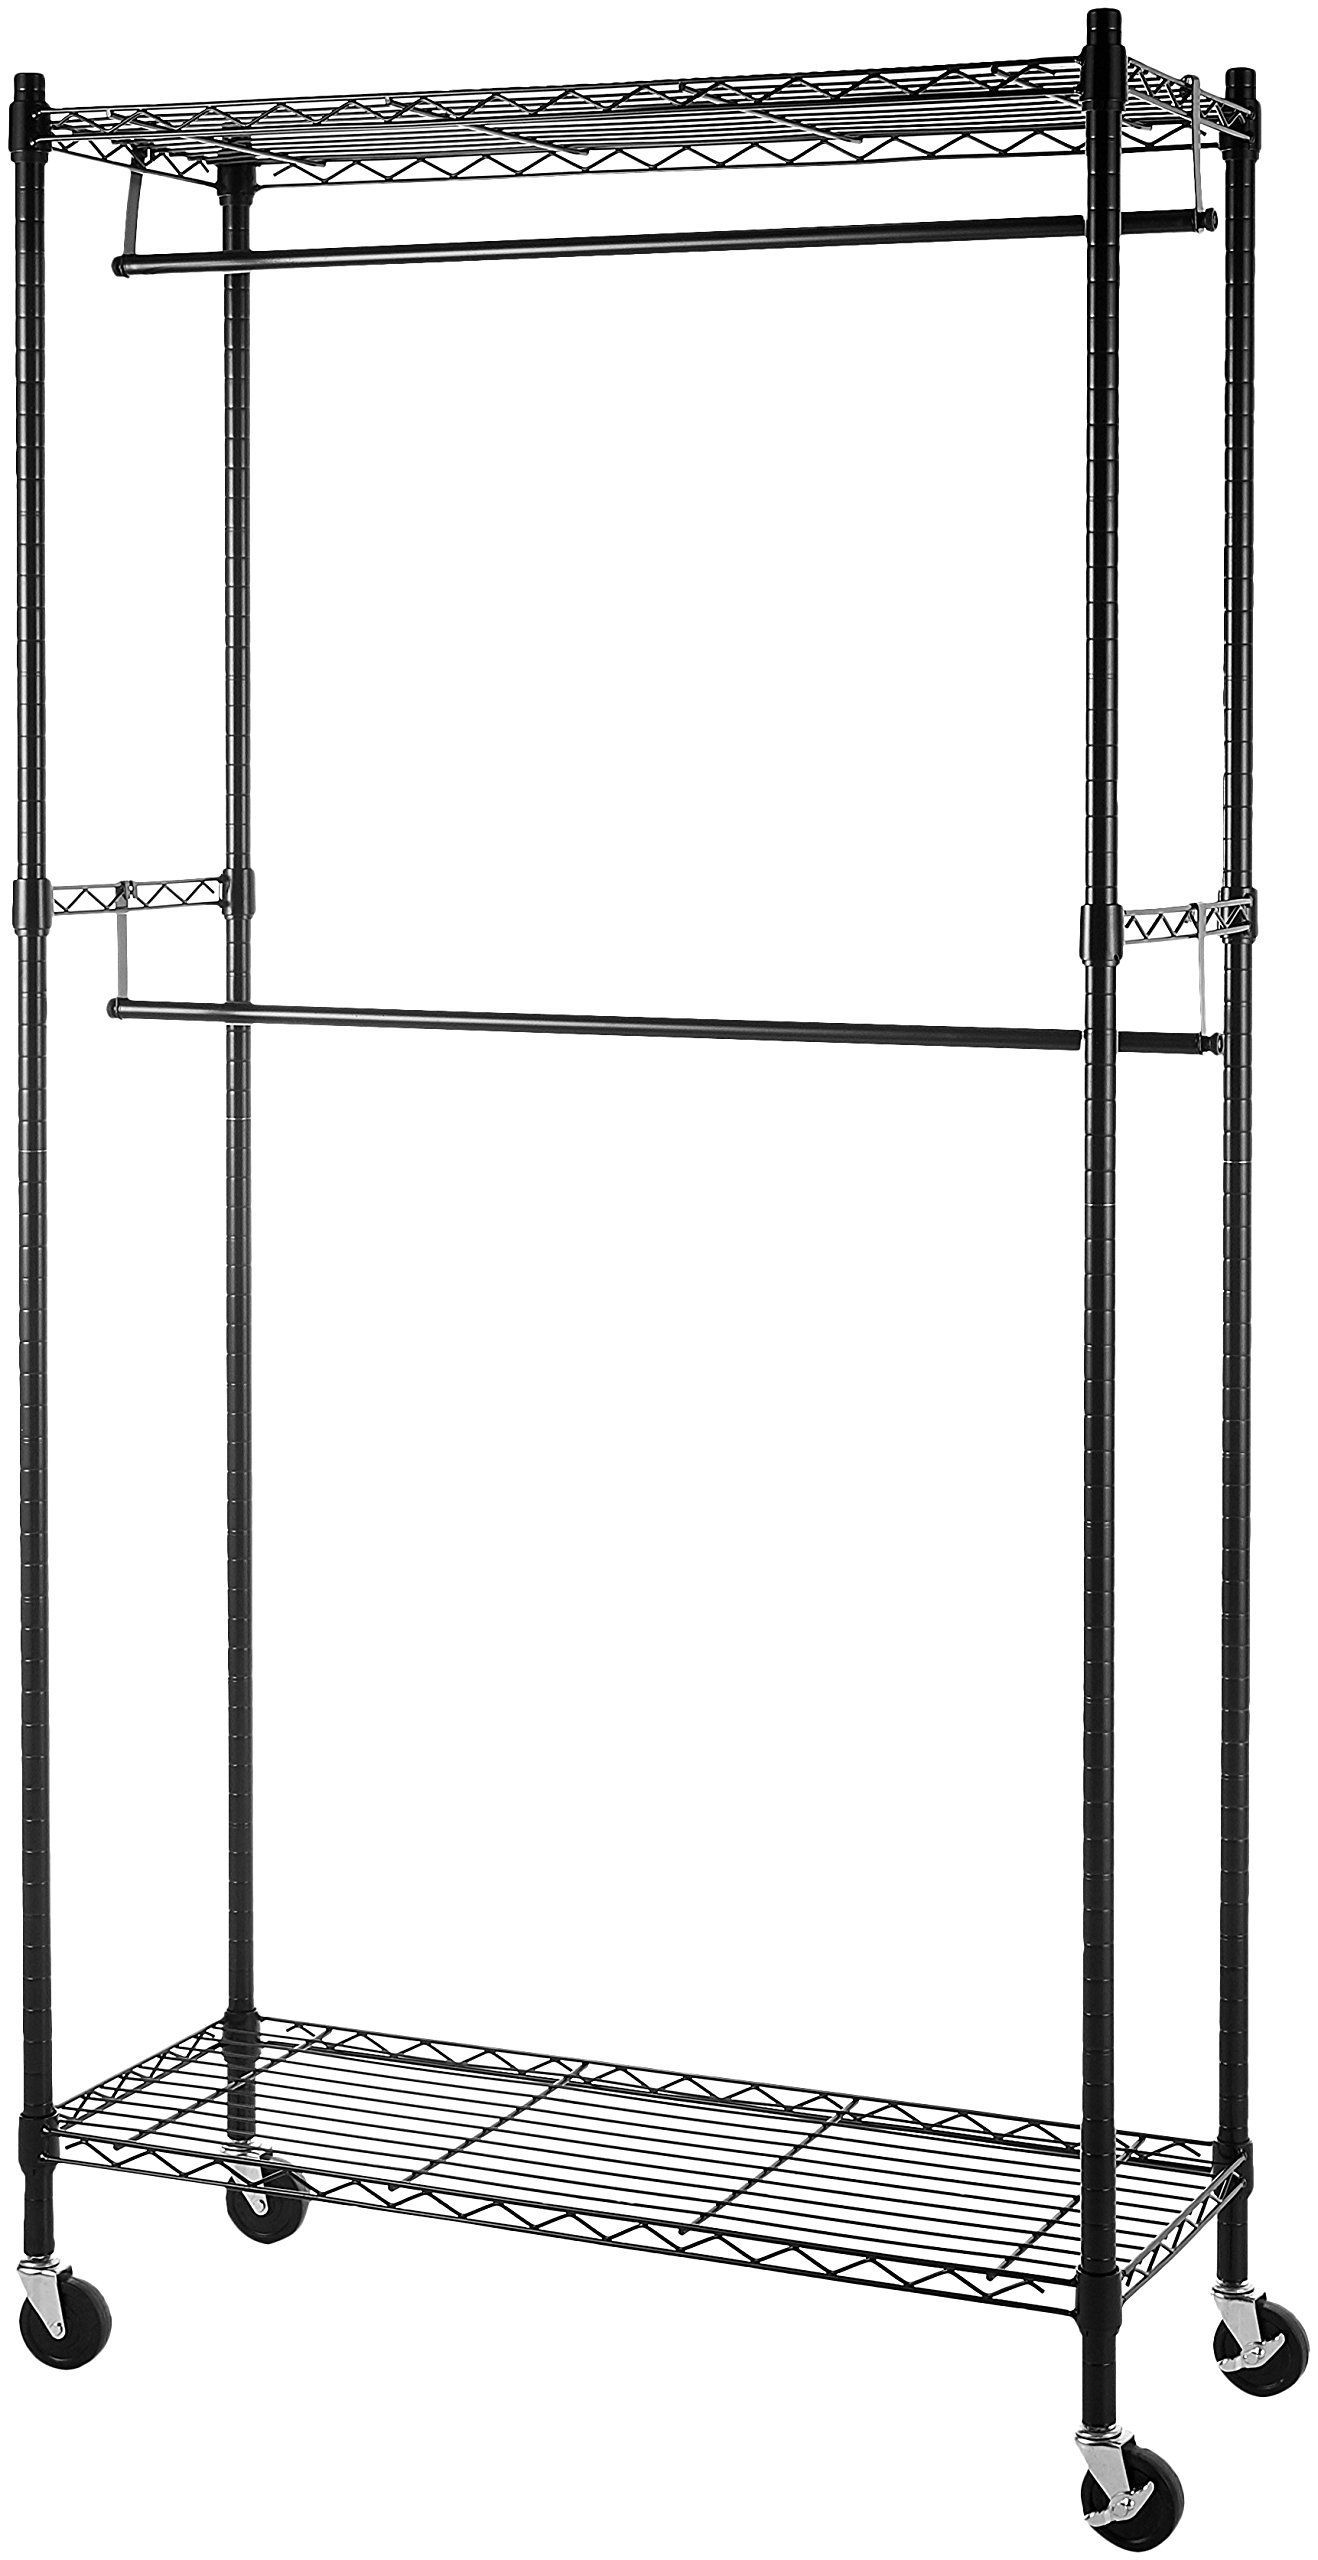 AmazonBasics Double Hanging Rod Garment Rolling Closet Organizer Rack, Black - Garment rack with upper and lower hanging rods, plus side-swing adjustable-height arm hanger Top and bottom adjustable-height shelves, each measuring 14 inches long by 36 inches wide 400-pound weight capacity when not moving; 200-pounds weight capacity when moving - entryway-furniture-decor, entryway-laundry-room, coat-racks - 81MPz bmpVL -